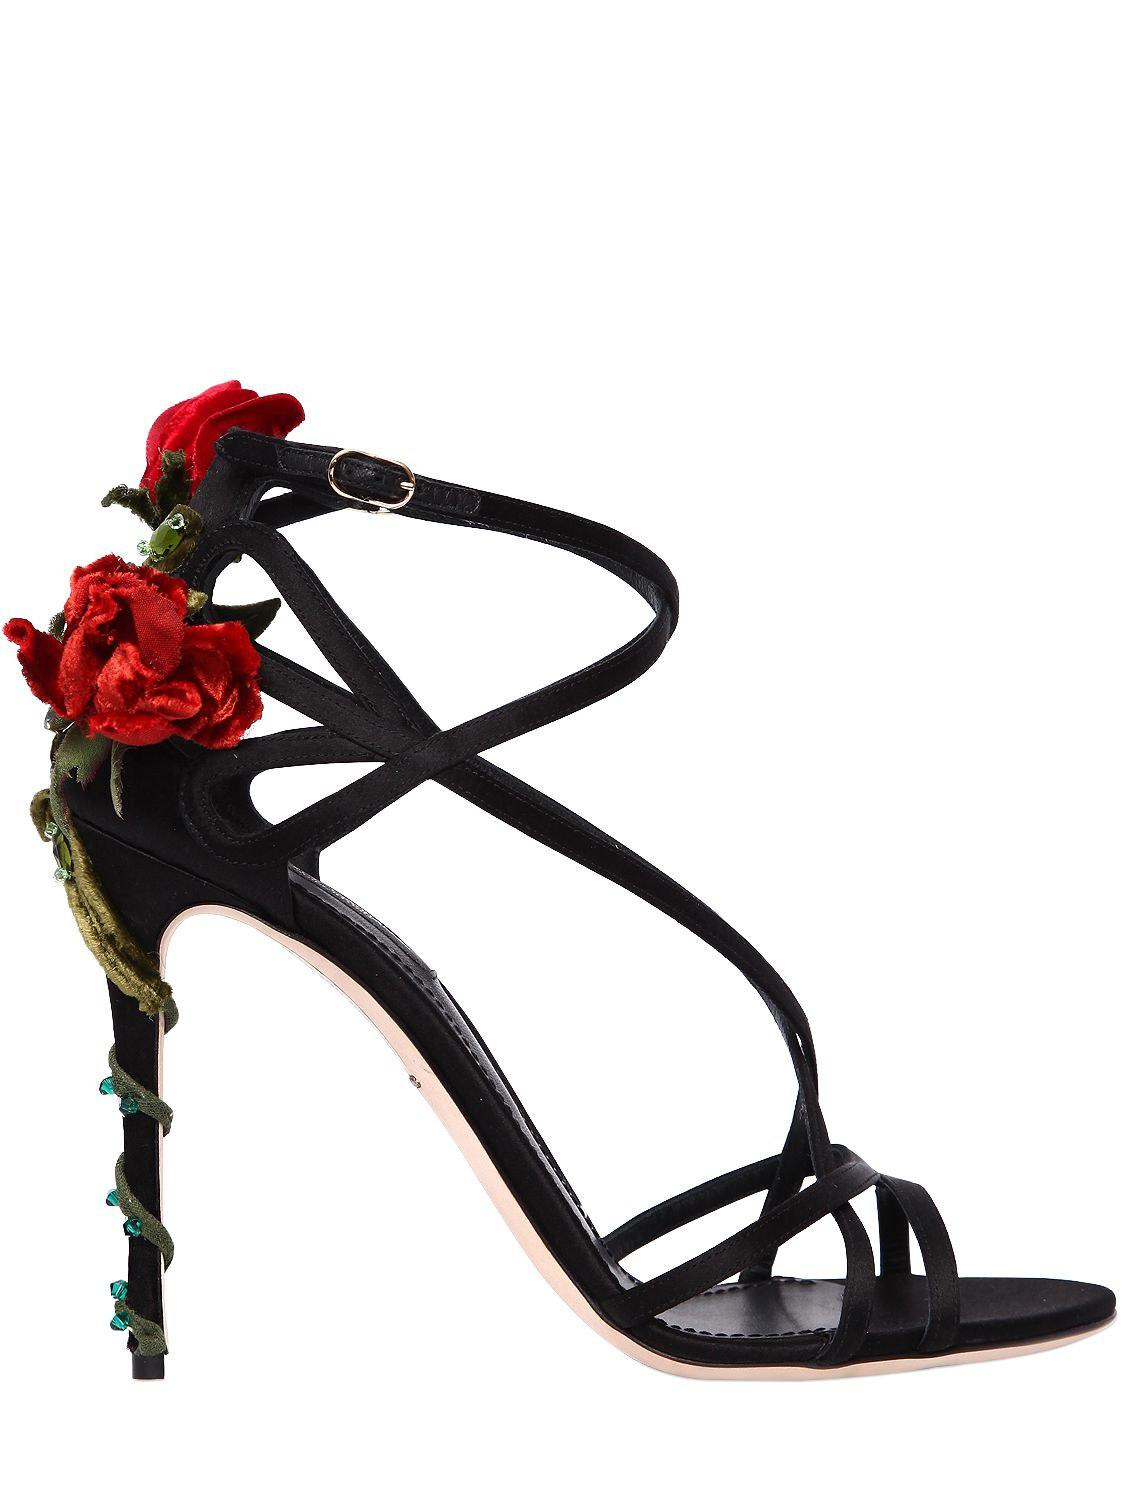 Dolce & Gabbana 105MM KEIRA ROSE SATIN SANDALS LS9ADxQM